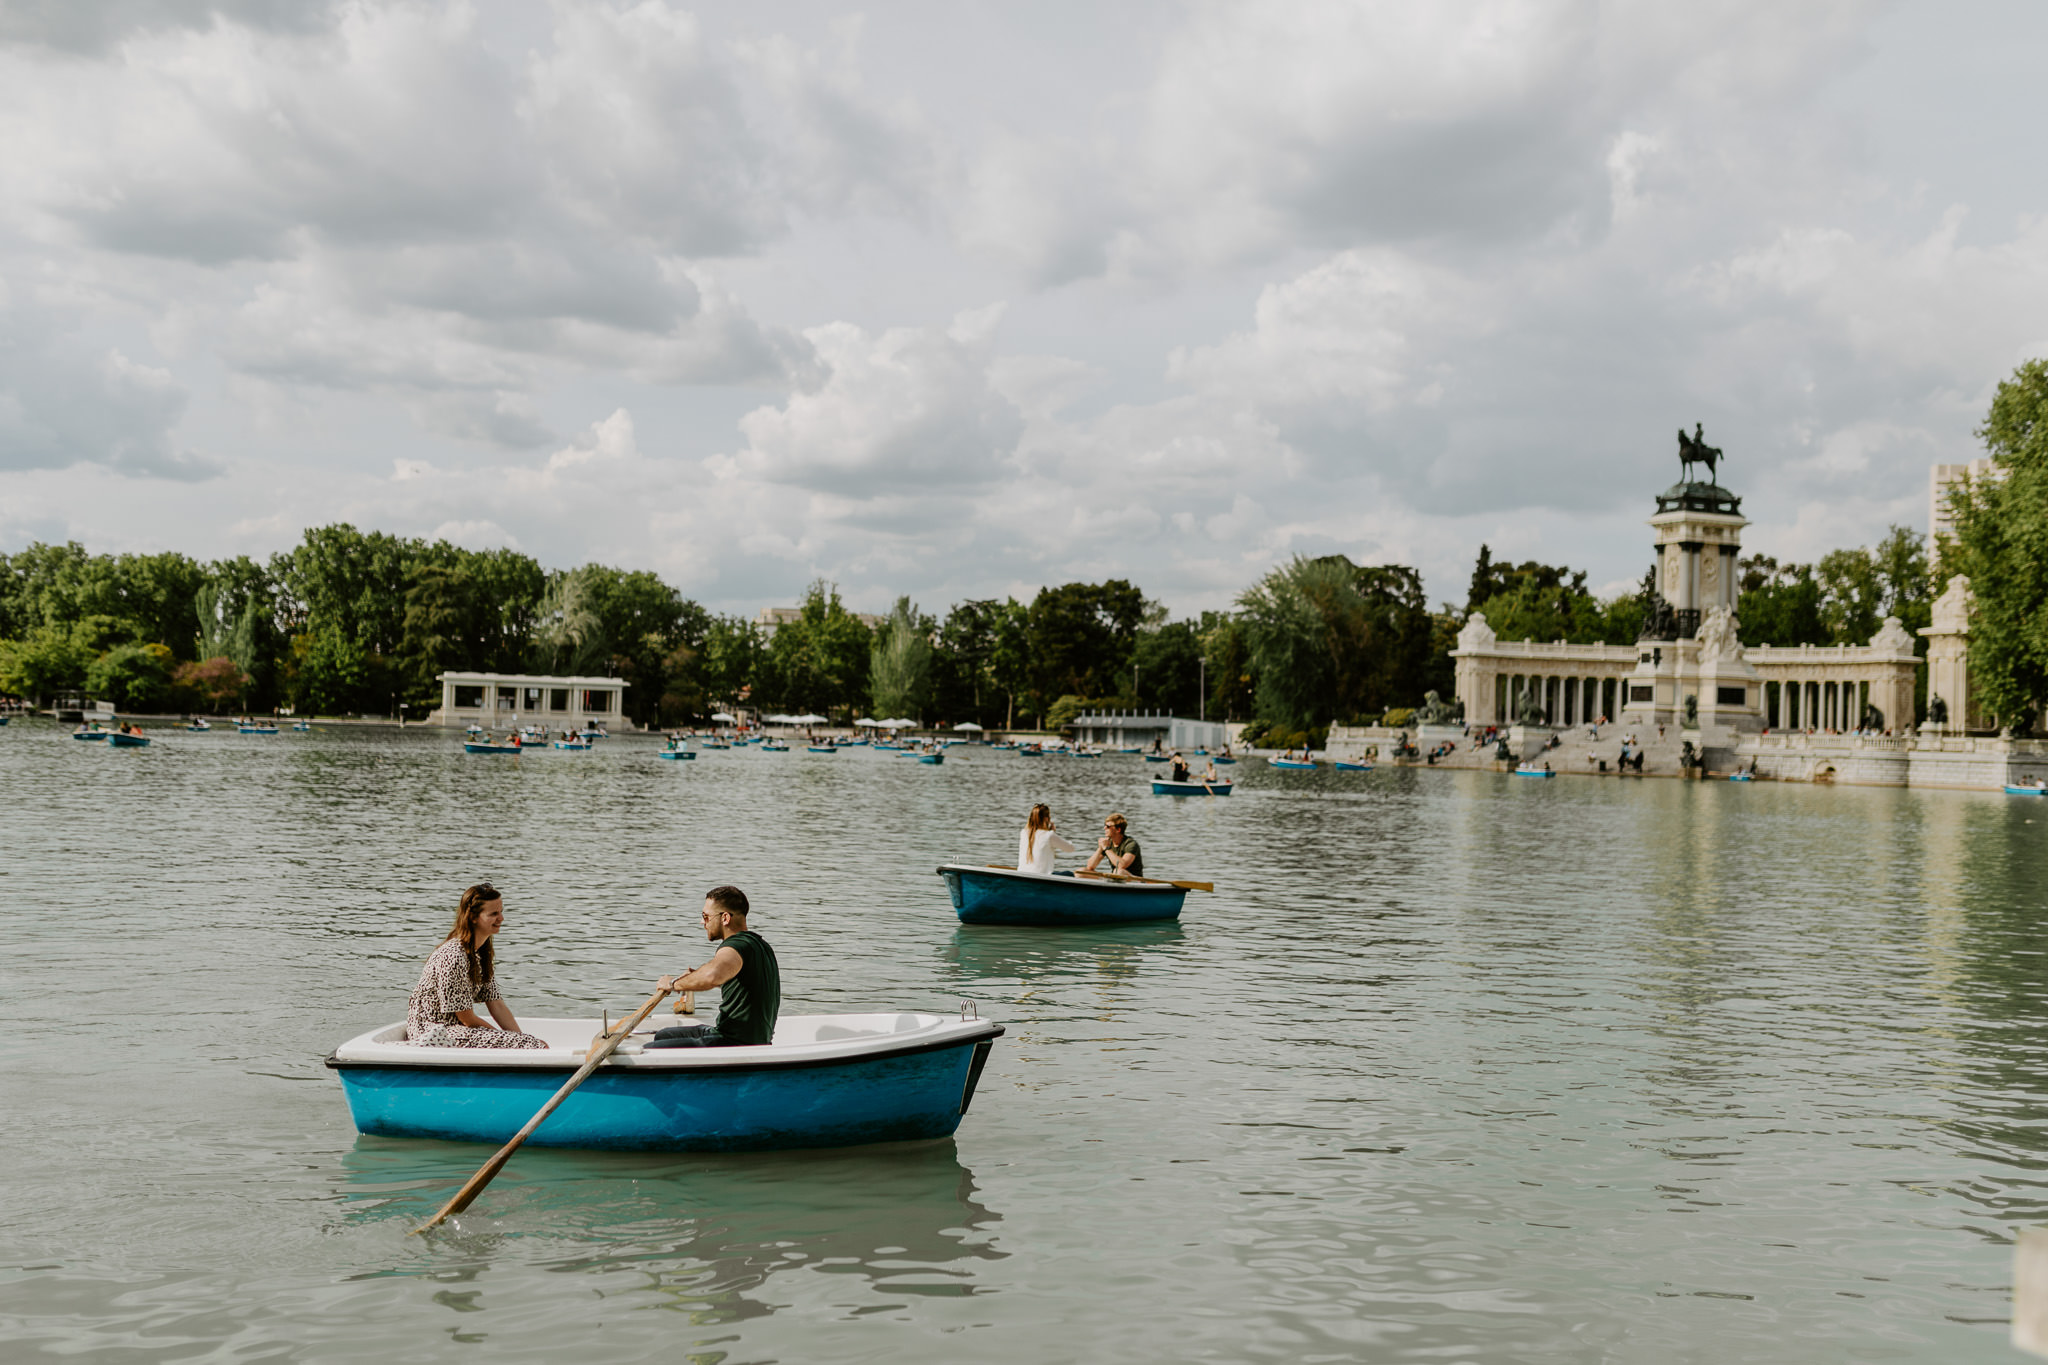 Bask in the sun and row boats for a while in El Retiro Park's man-made lake!